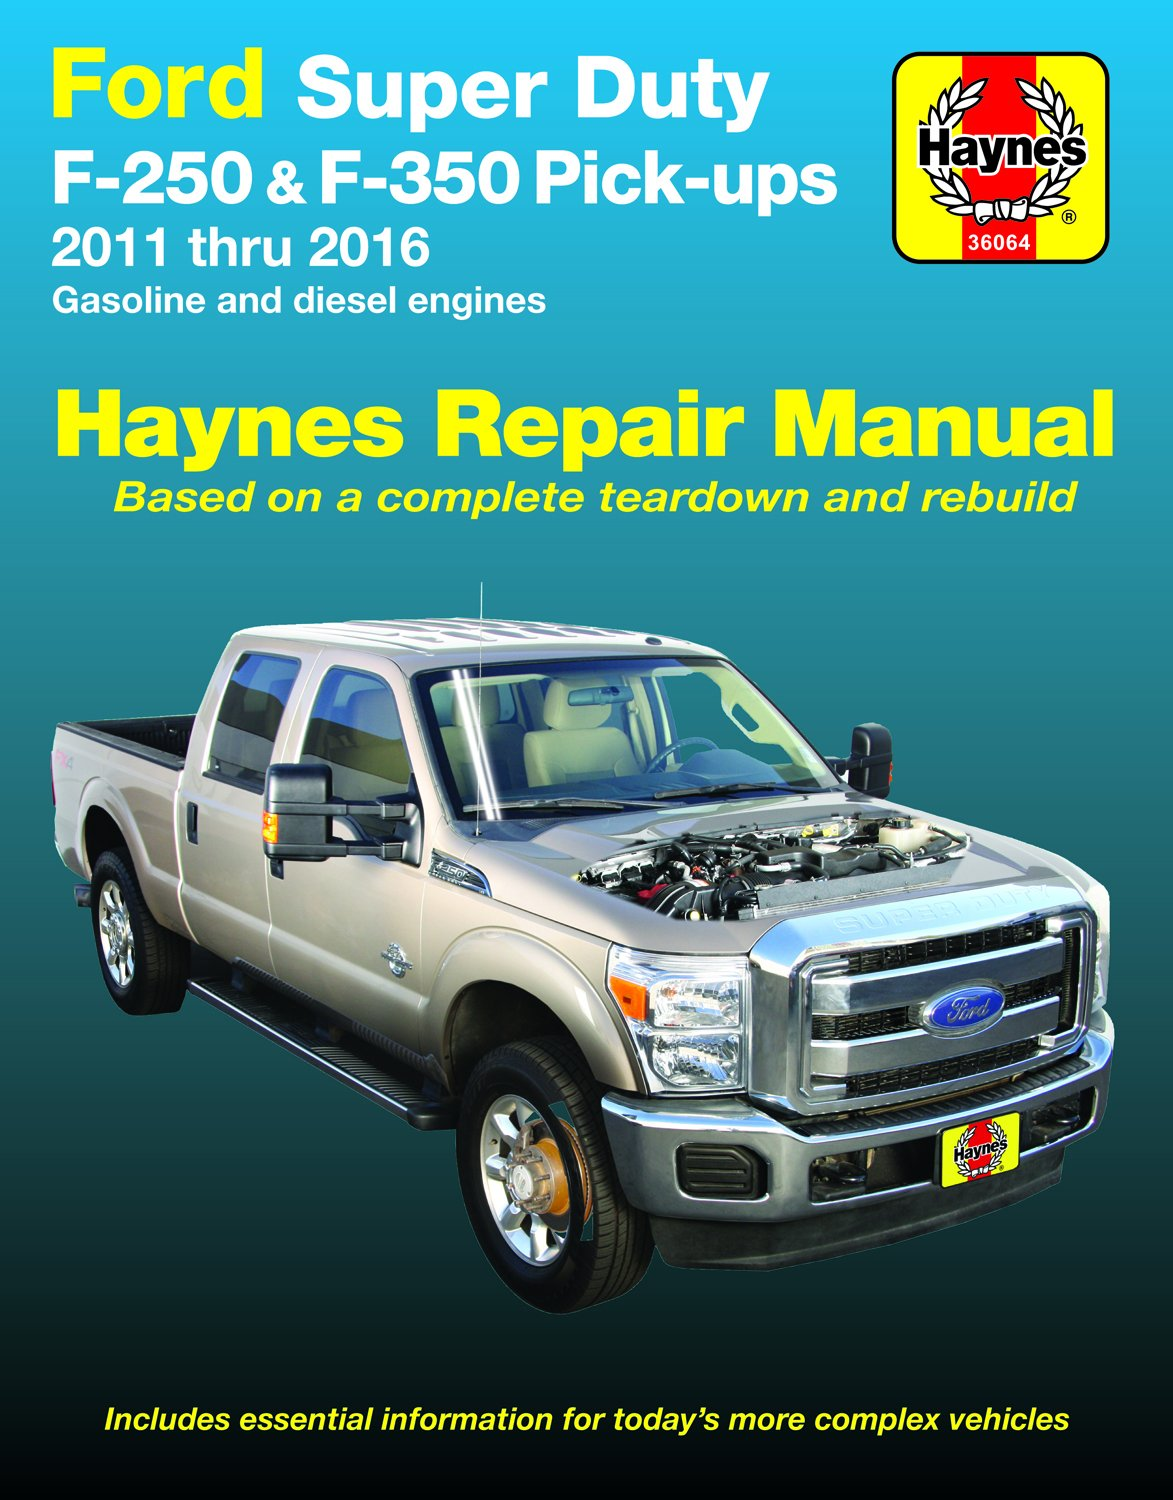 Ford Super Duty F-250 & F-350 2WD & 4WD Gas & Diesel Engine Pick-ups  (11-16) Hay: Haynes Publishing: 9781620922569: Amazon.com: Books | Ford F 350 Engine Schematics |  | Amazon.com